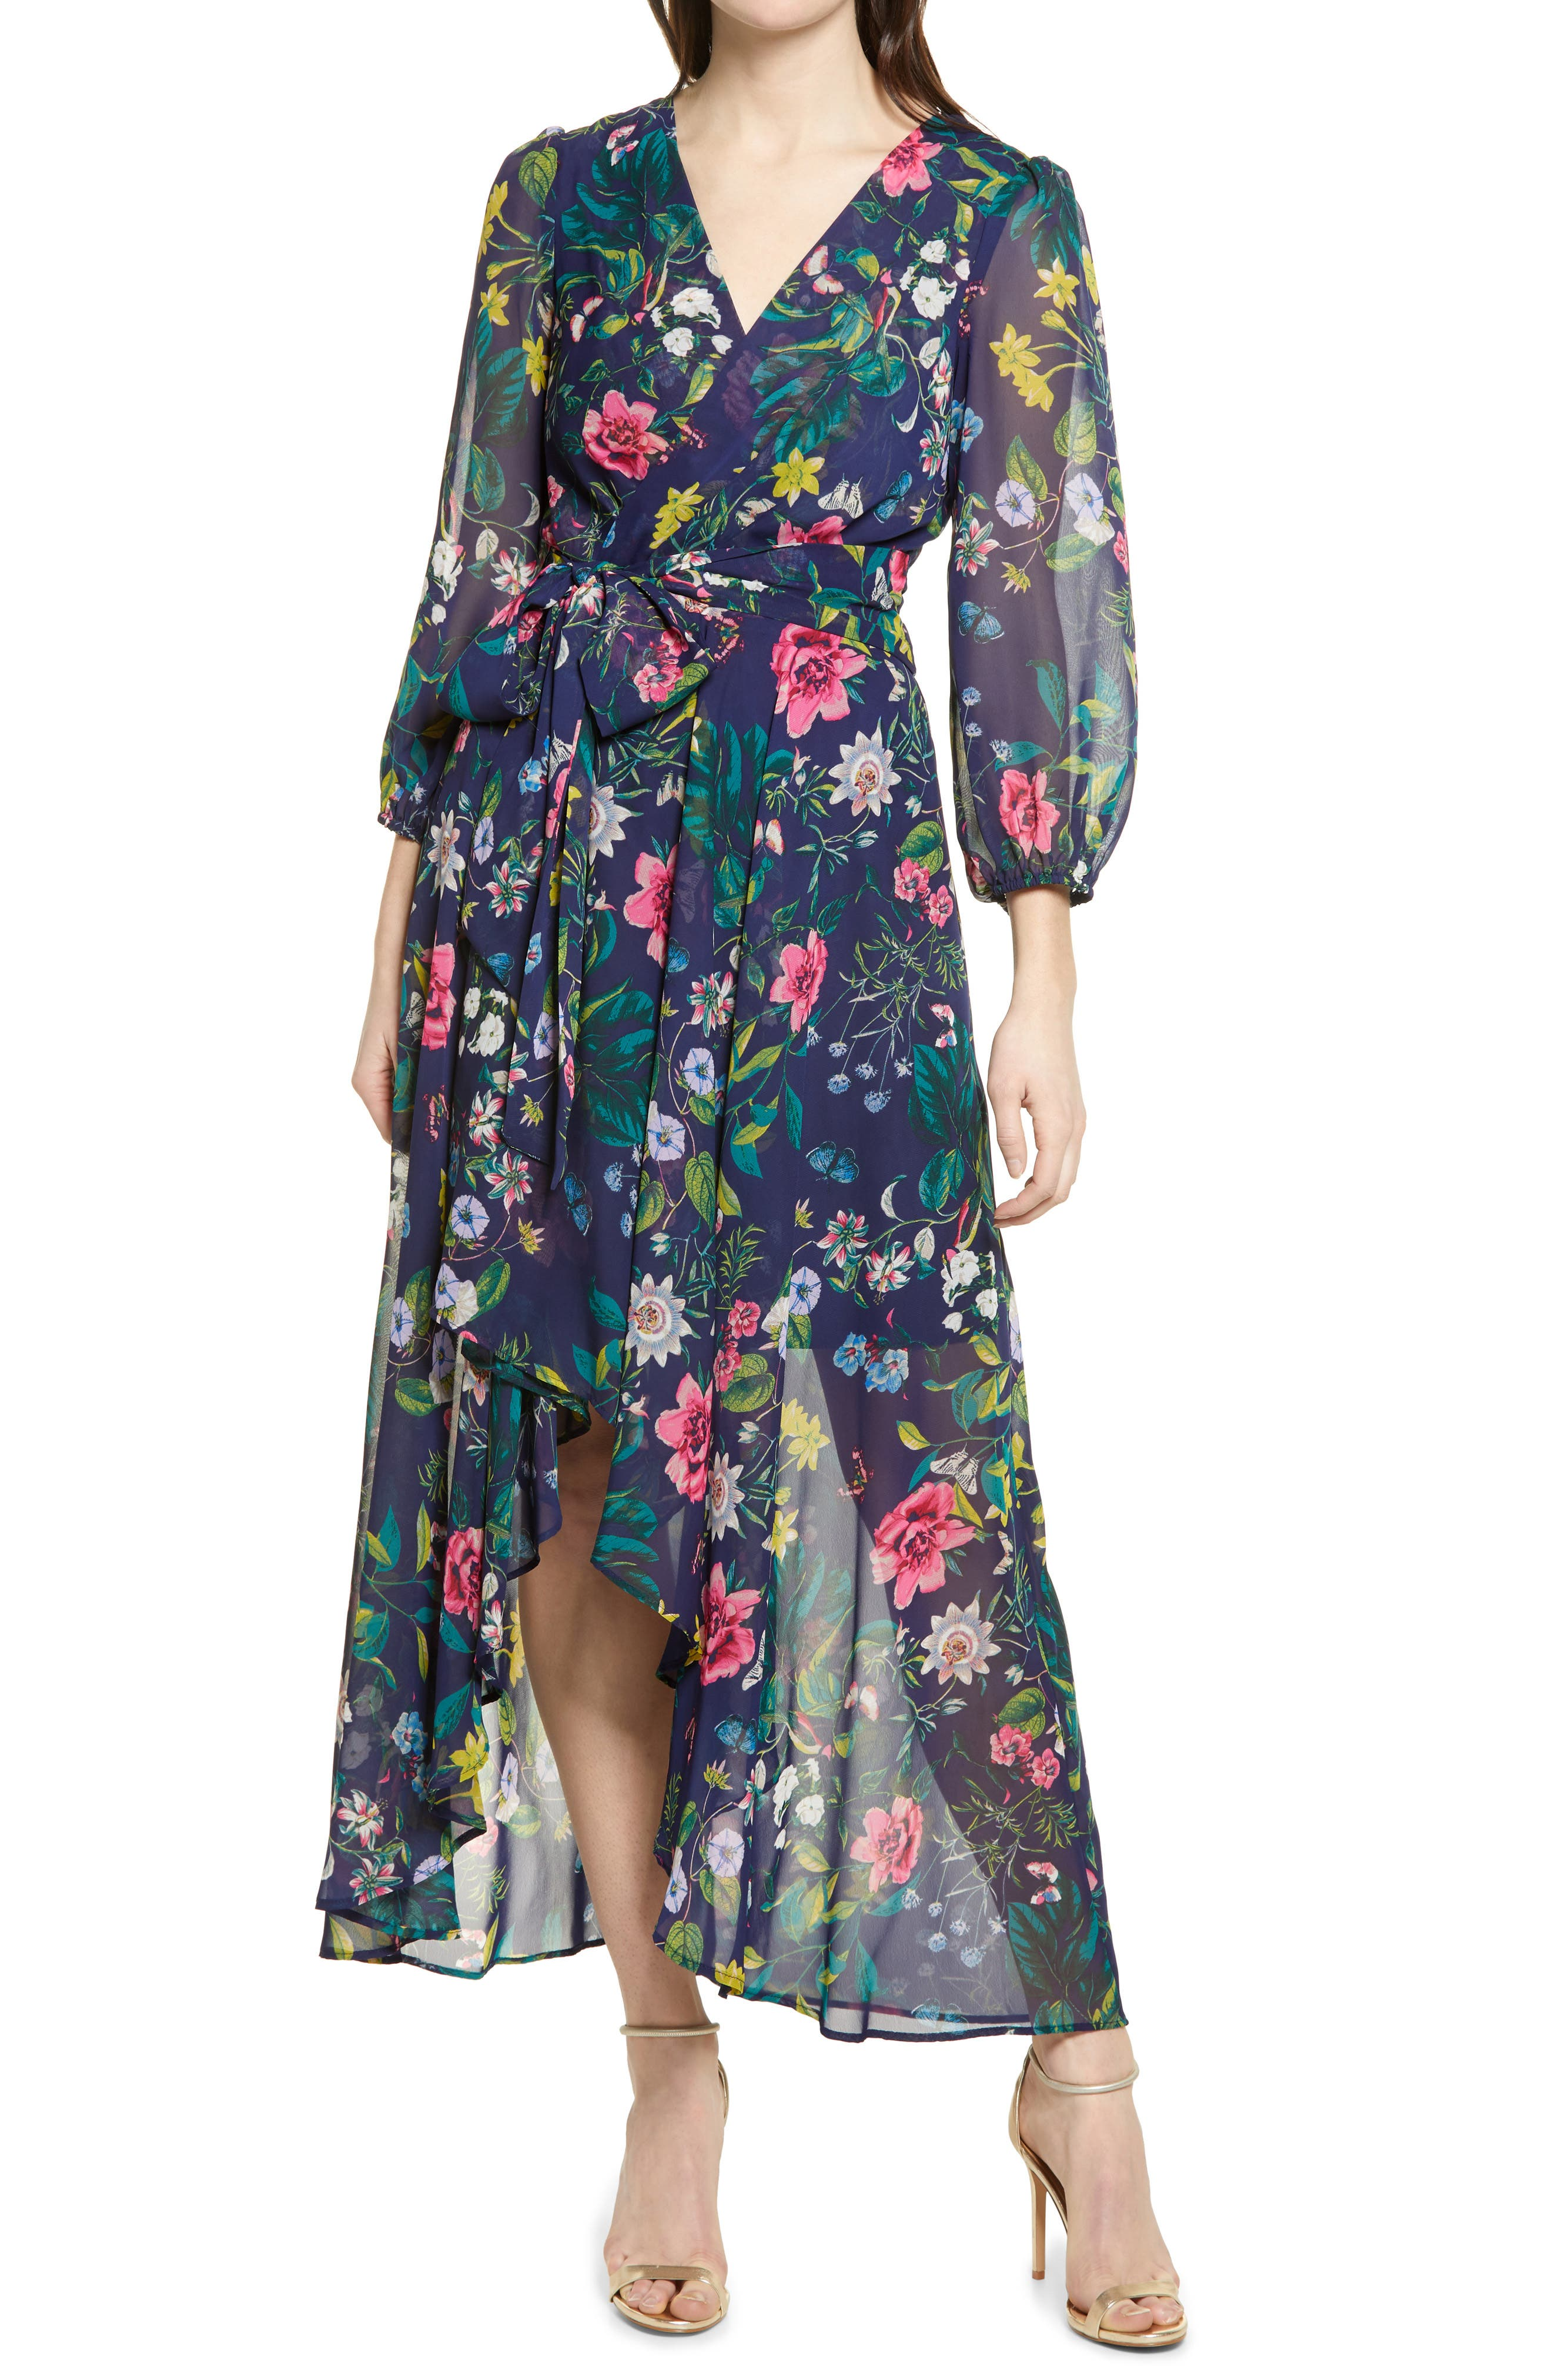 80s Dress Styles | Party, Prom, Formal Womens Eliza J Floral Long Sleeve Faux Wrap Dress Size 0 - Blue $148.00 AT vintagedancer.com